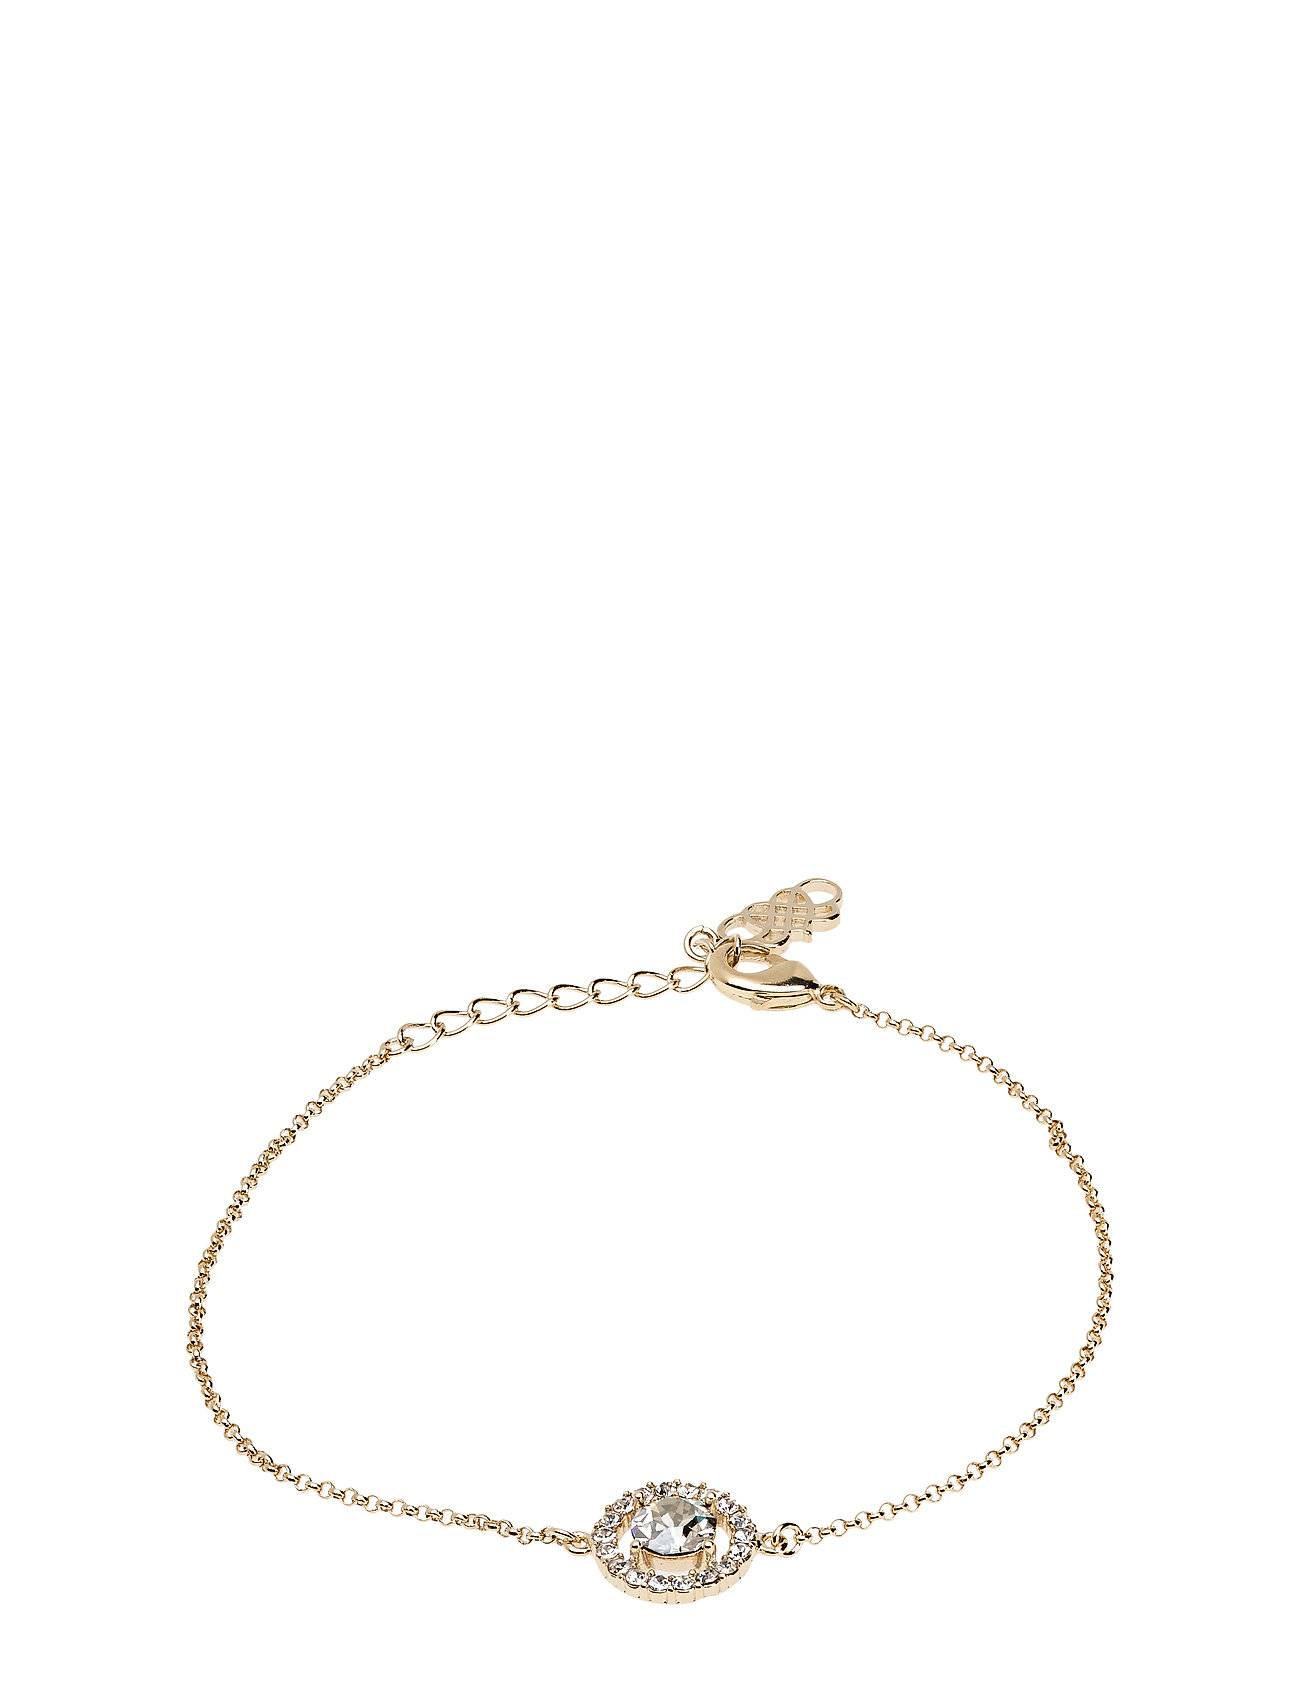 LILY AND ROSE Miss Miranda Bracelet - Silvershade Accessories Jewellery Bracelets Chain Bracelets Hopea LILY AND ROSE